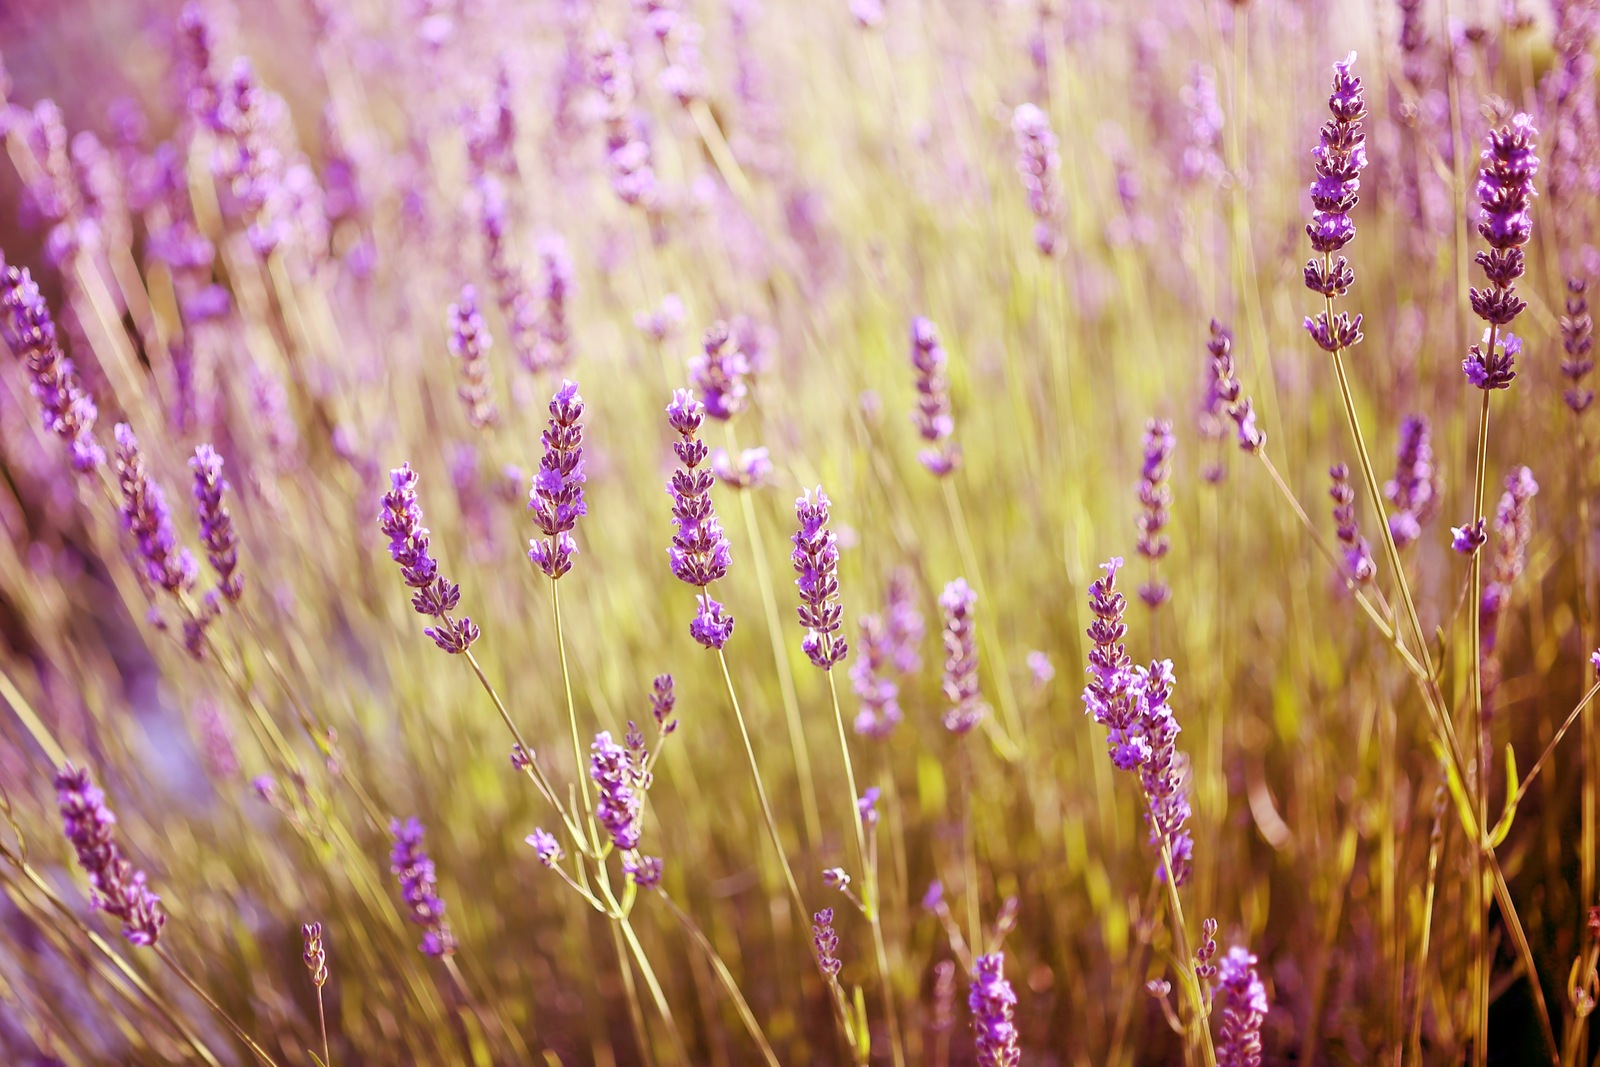 Lavender | Exactly How Does Sleepy Time Tea Work?